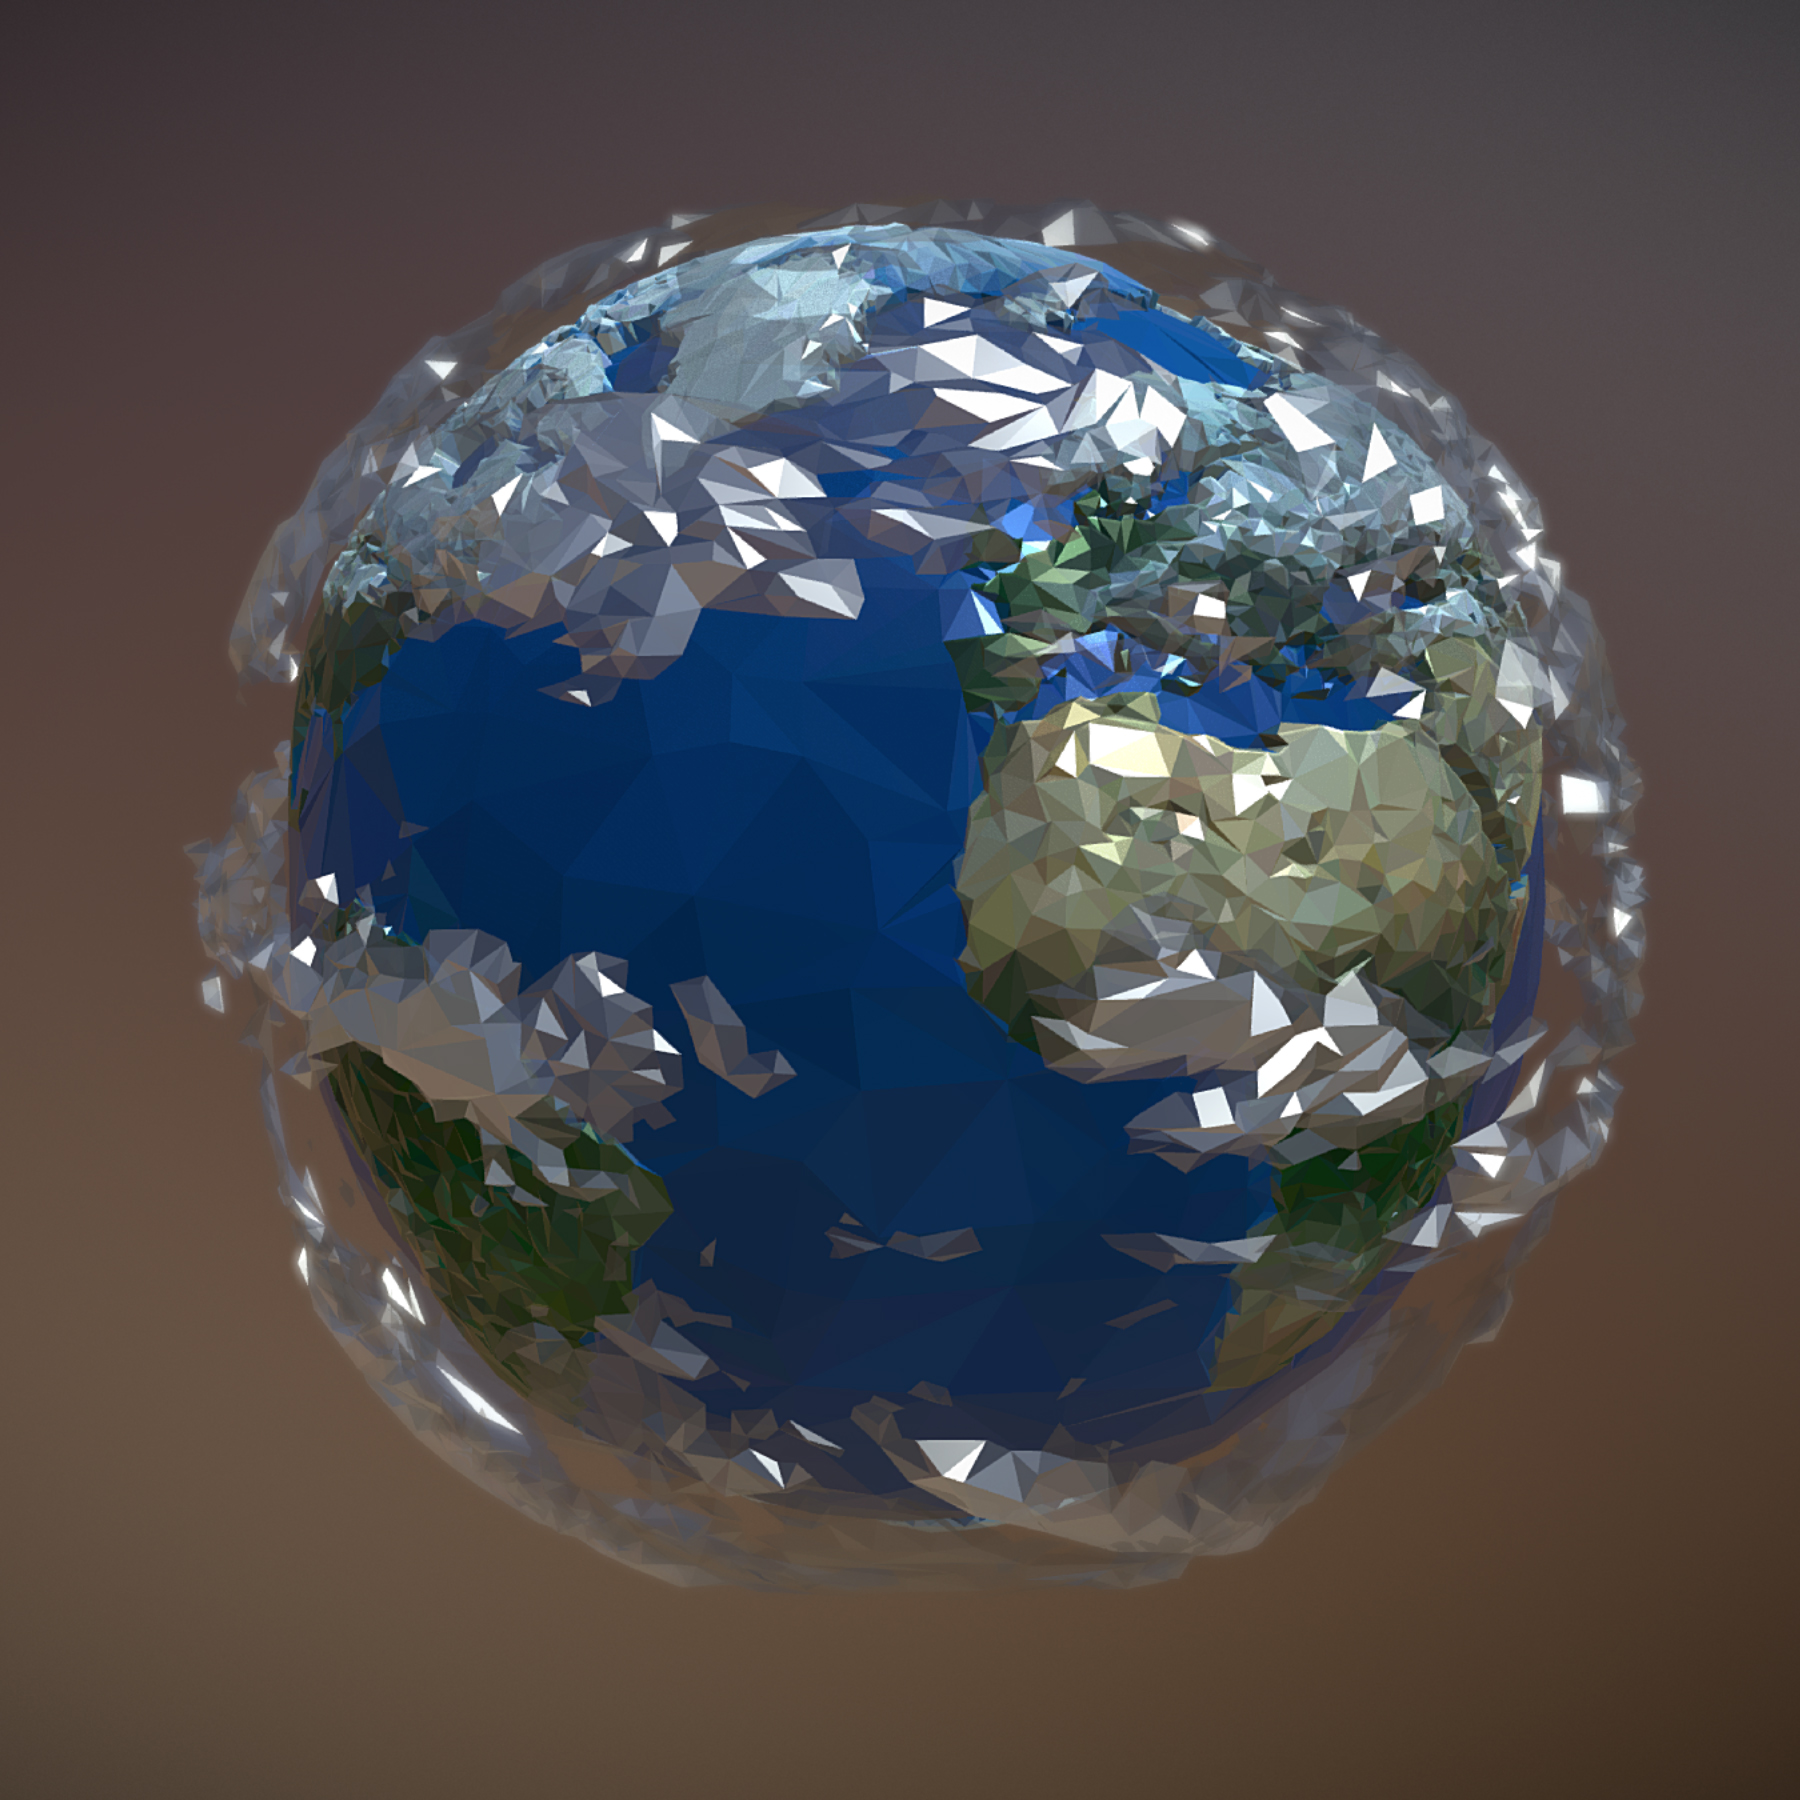 animated planet earth 3d model 3ds max fbx ma mb tga targa icb vda vst pix obj 271039